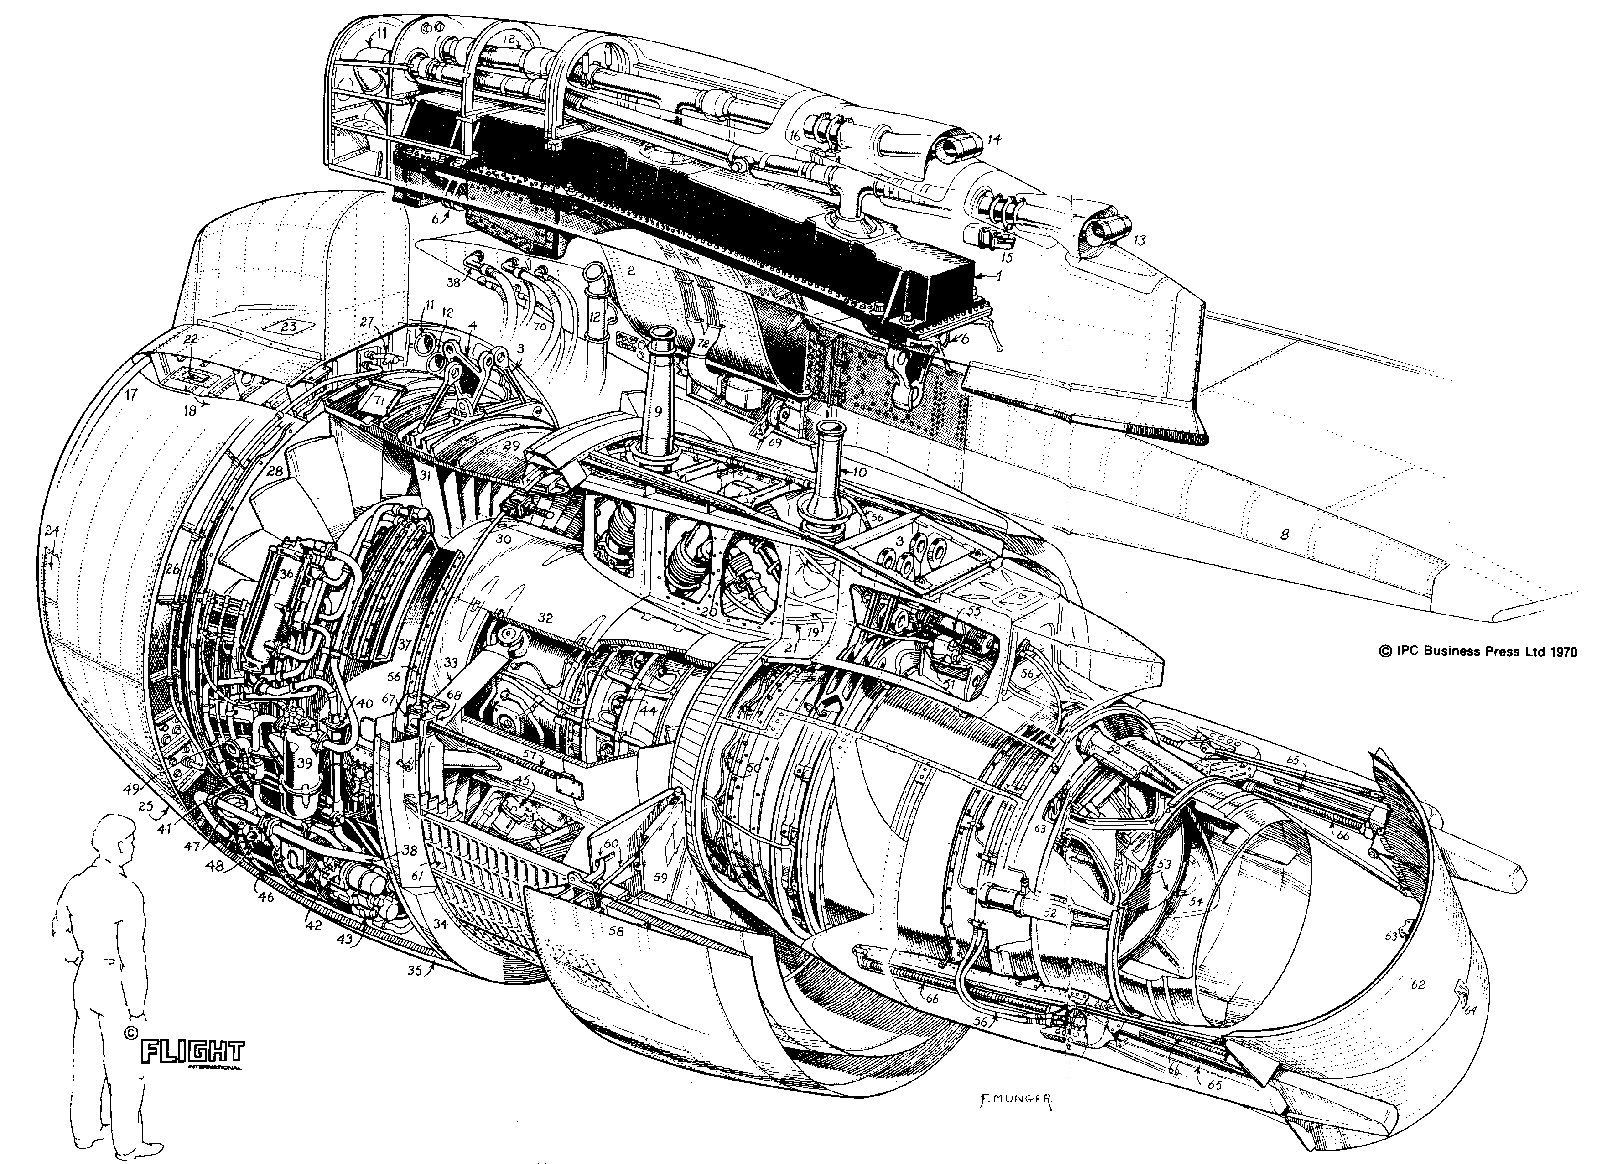 Aircraft Engineering Drawings Auto Electrical Wiring Diagram Belmont Trailer Related With